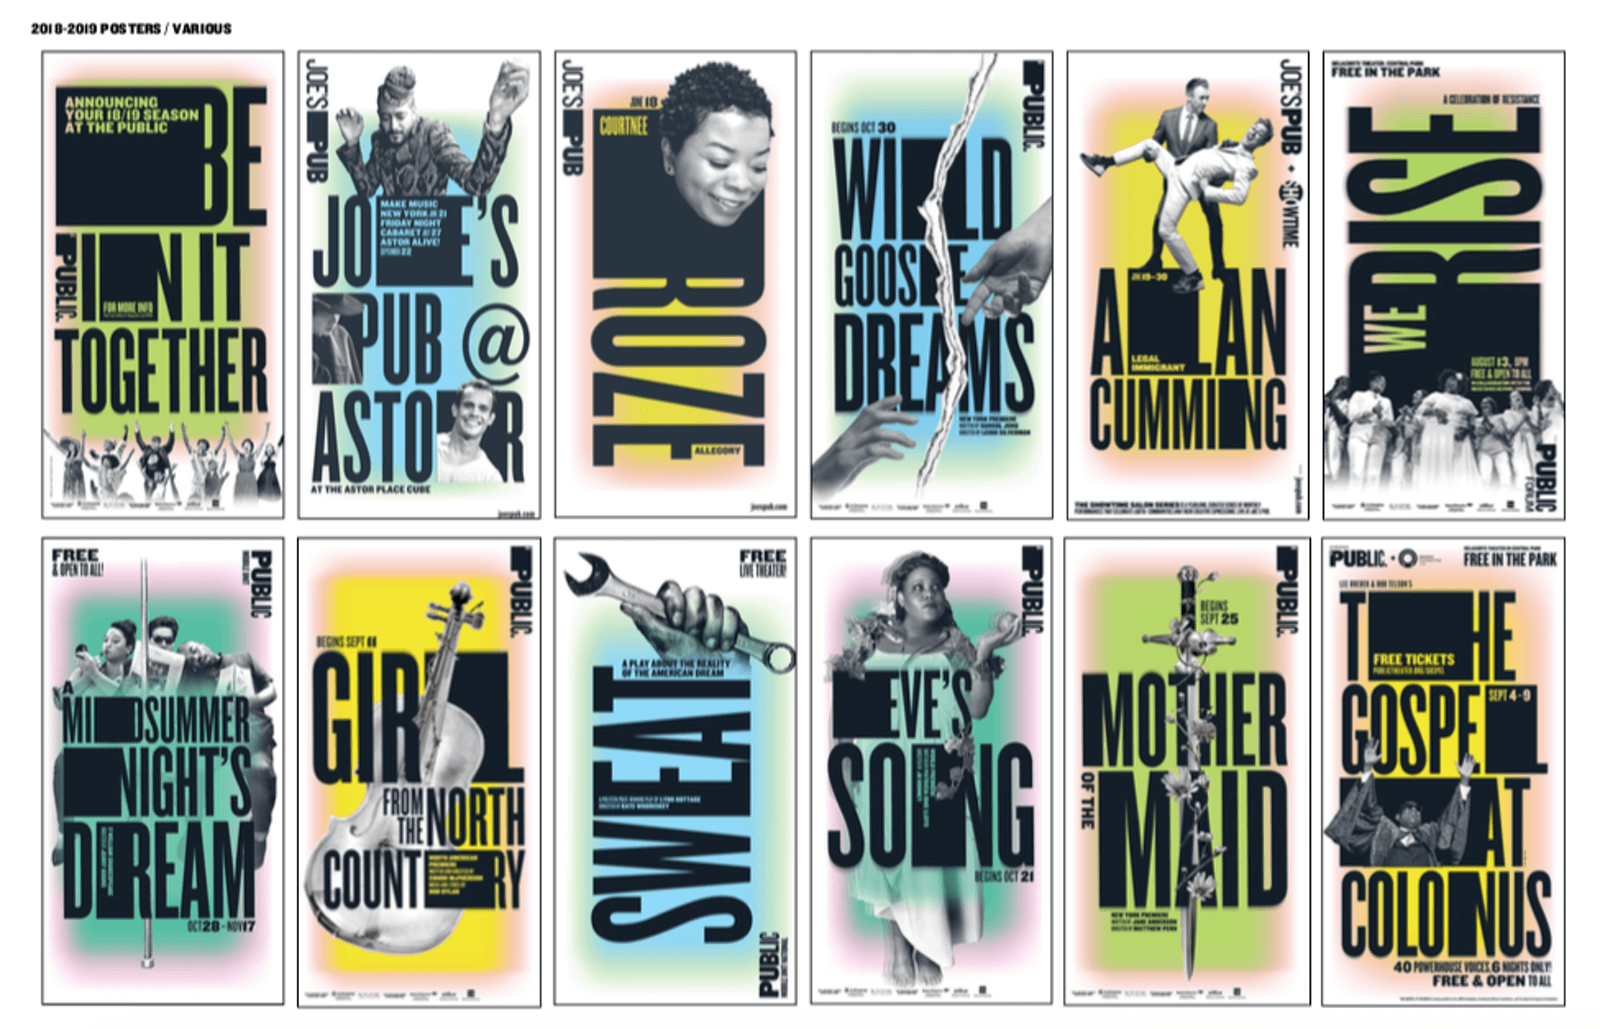 Twelve Public Theater posters using black, white, and pastel colors with wood type letterforms and softer images of people.